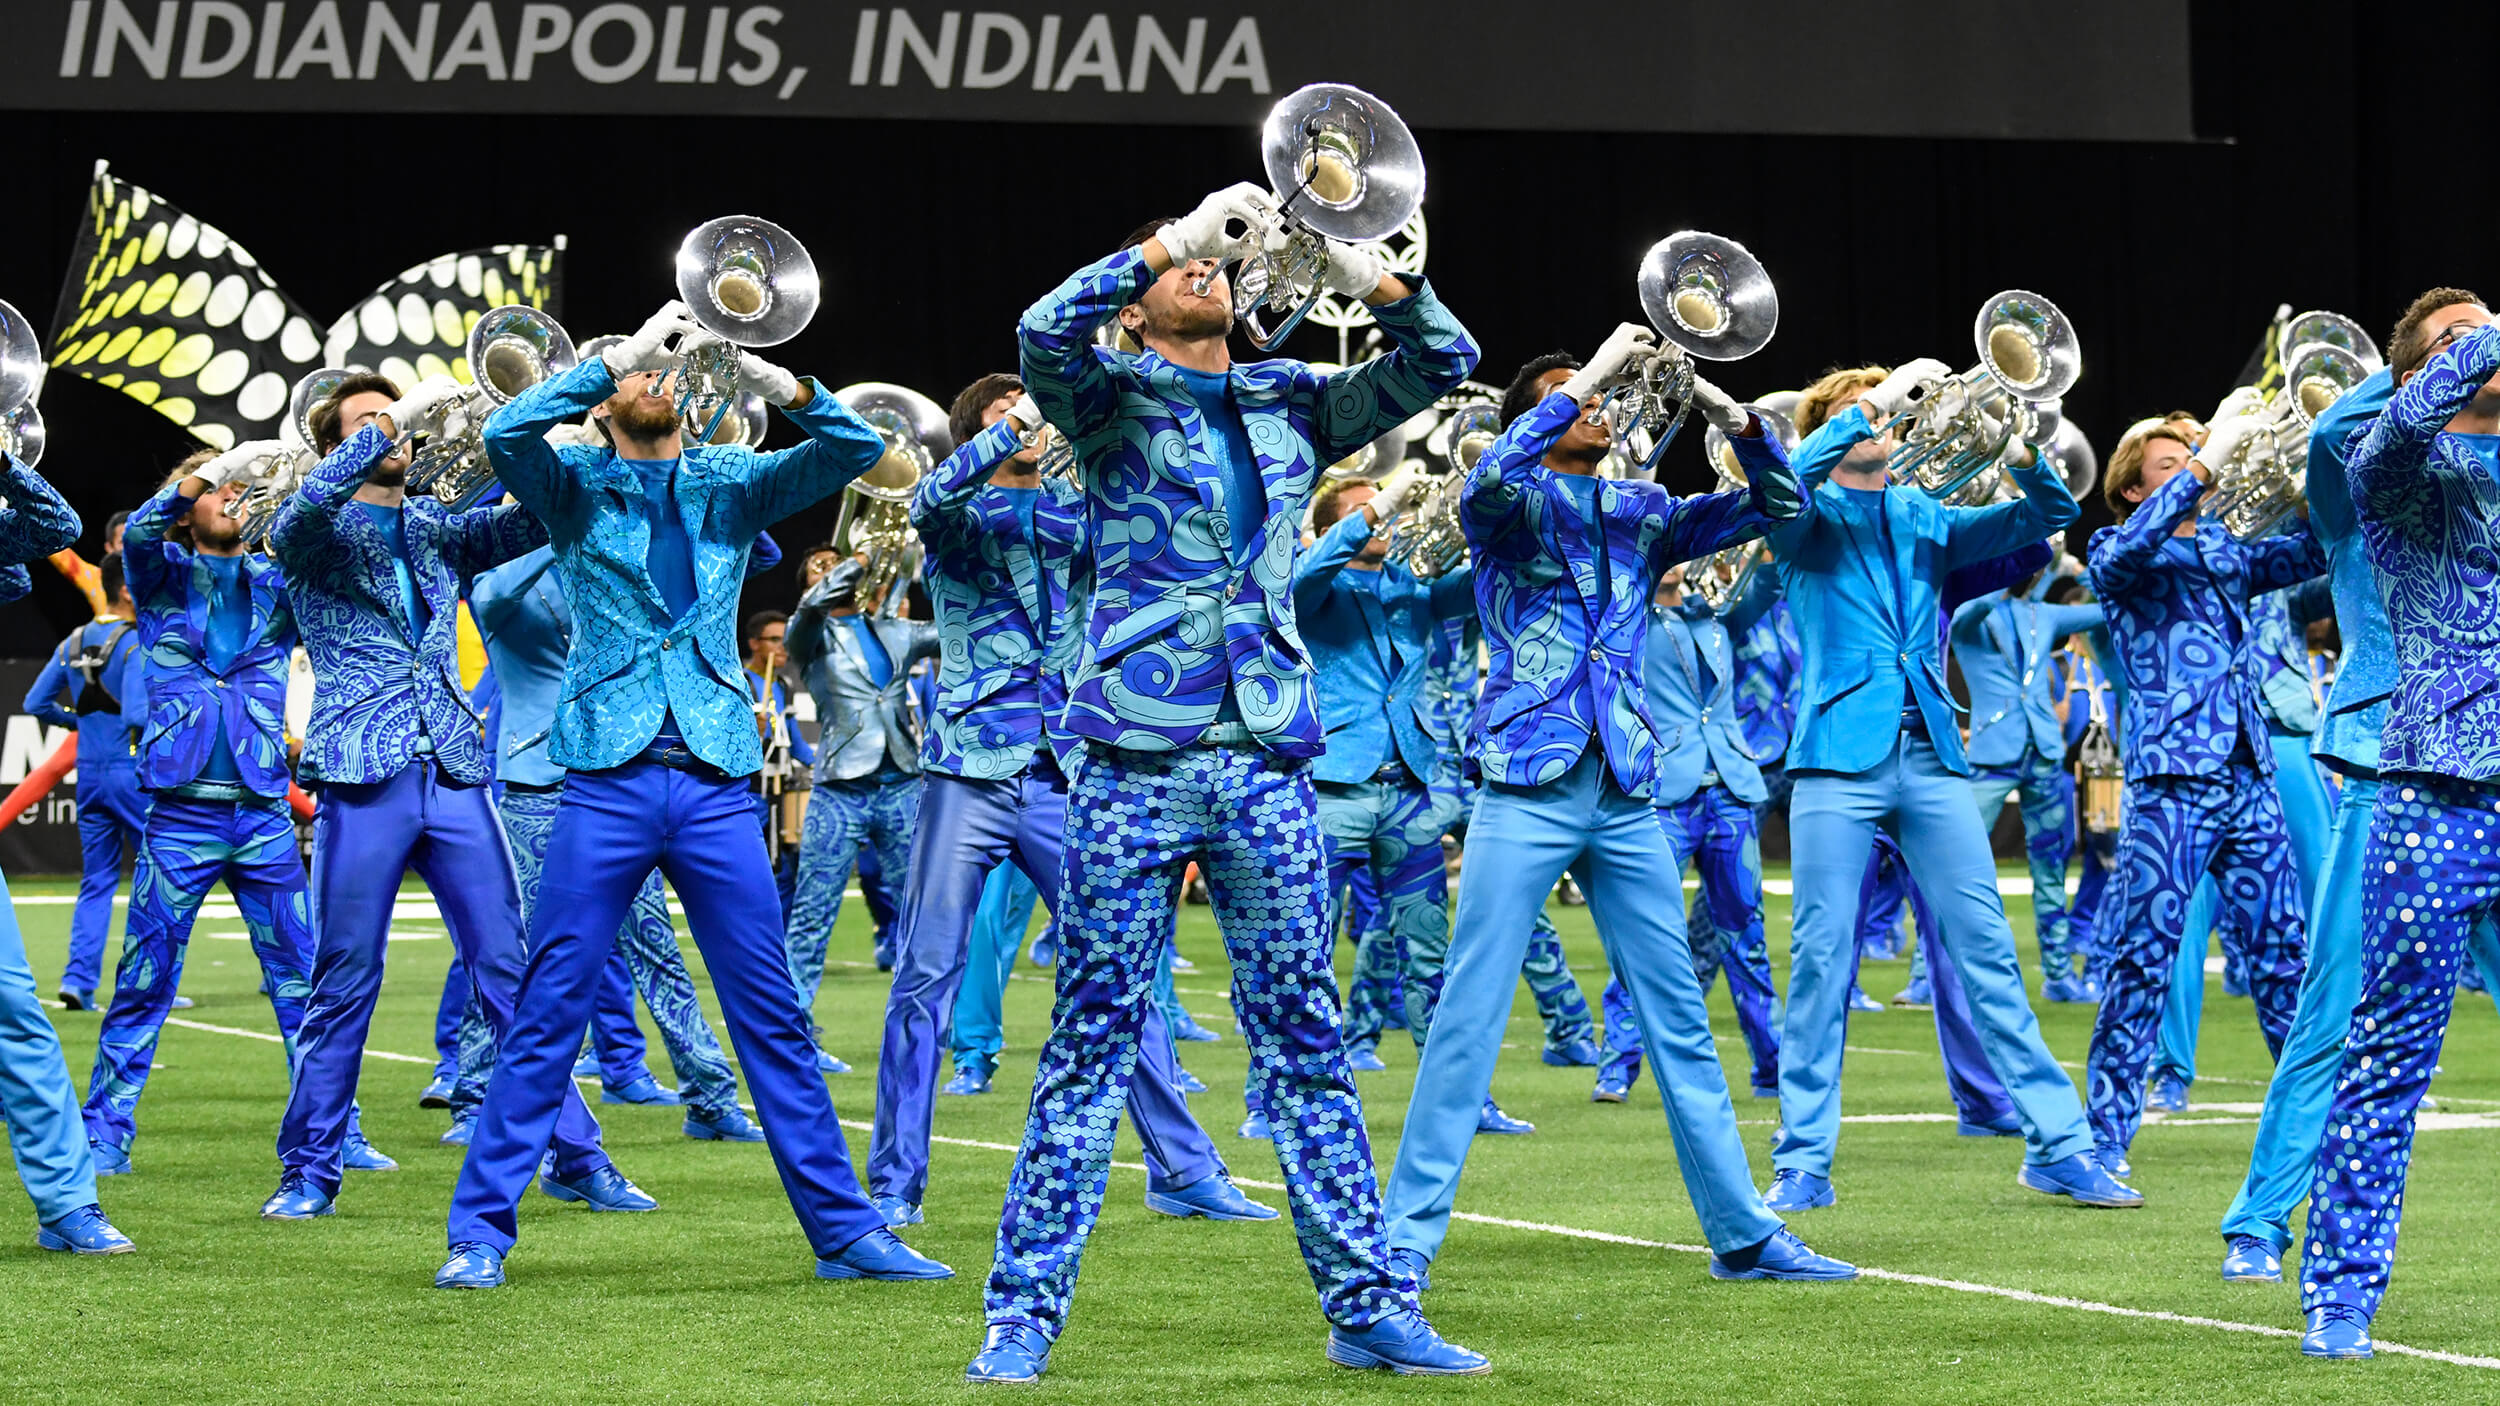 Bluecoats stand tall, top deep Prelims lineup